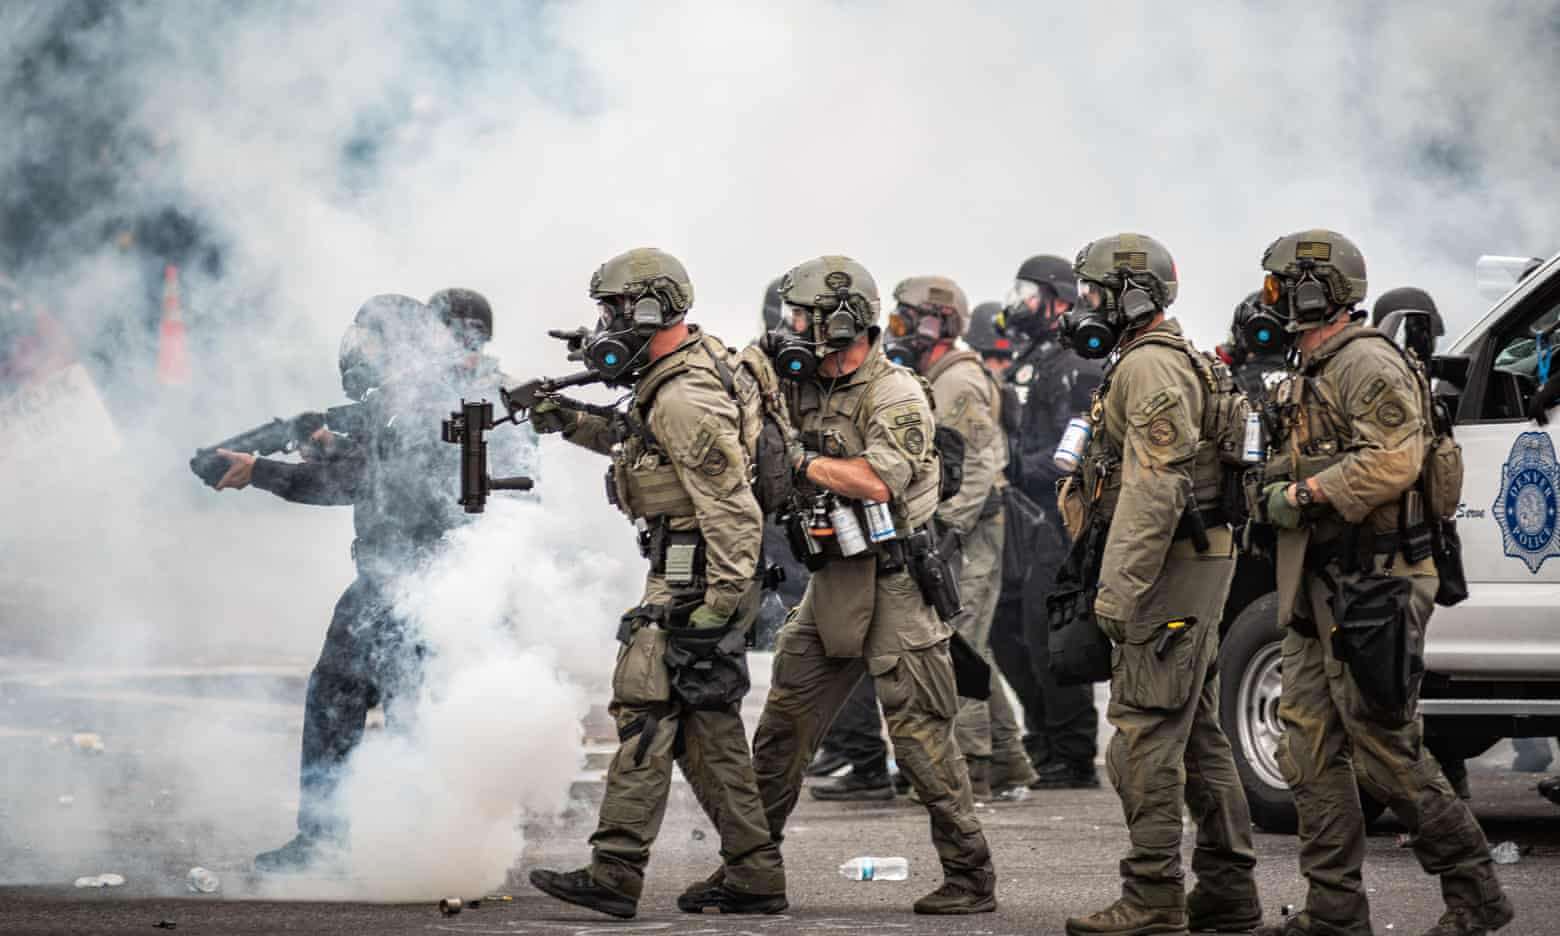 Riot police points weapons as they move through a cloud of teargas at a Black Lives Matter protest in Denver. Photograph: Paul Winner/REX/Shutterstock